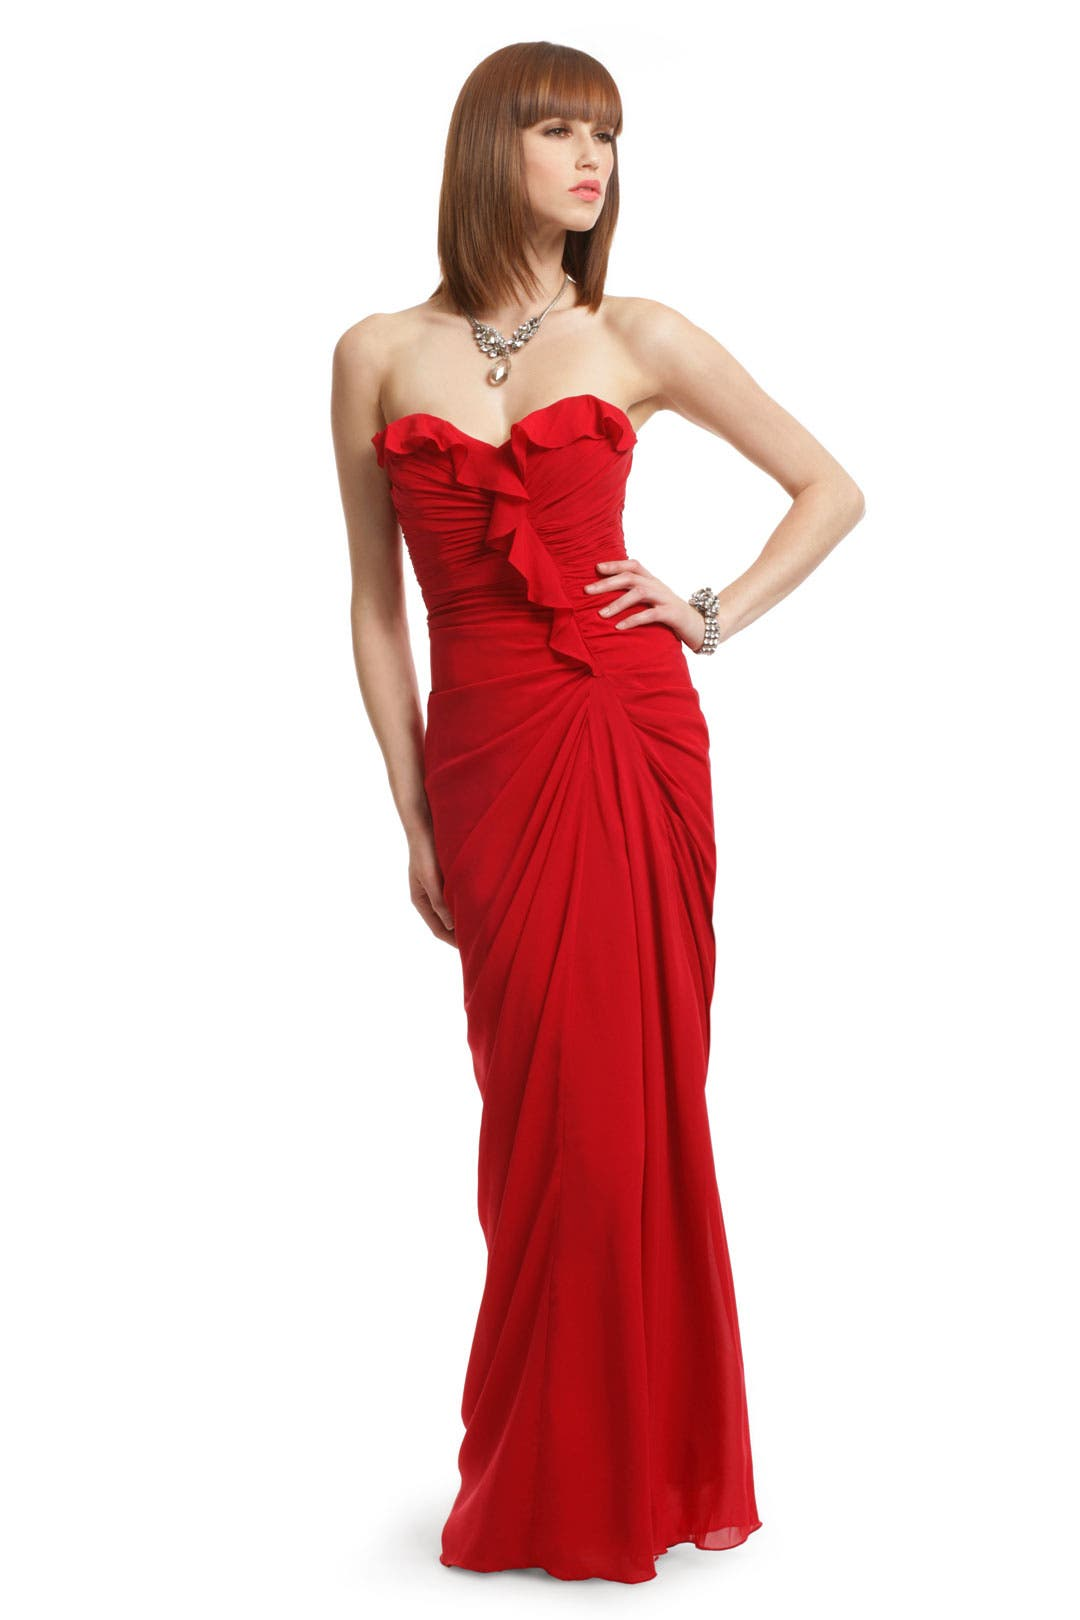 Ruffles in Red Gown by Badgley Mischka